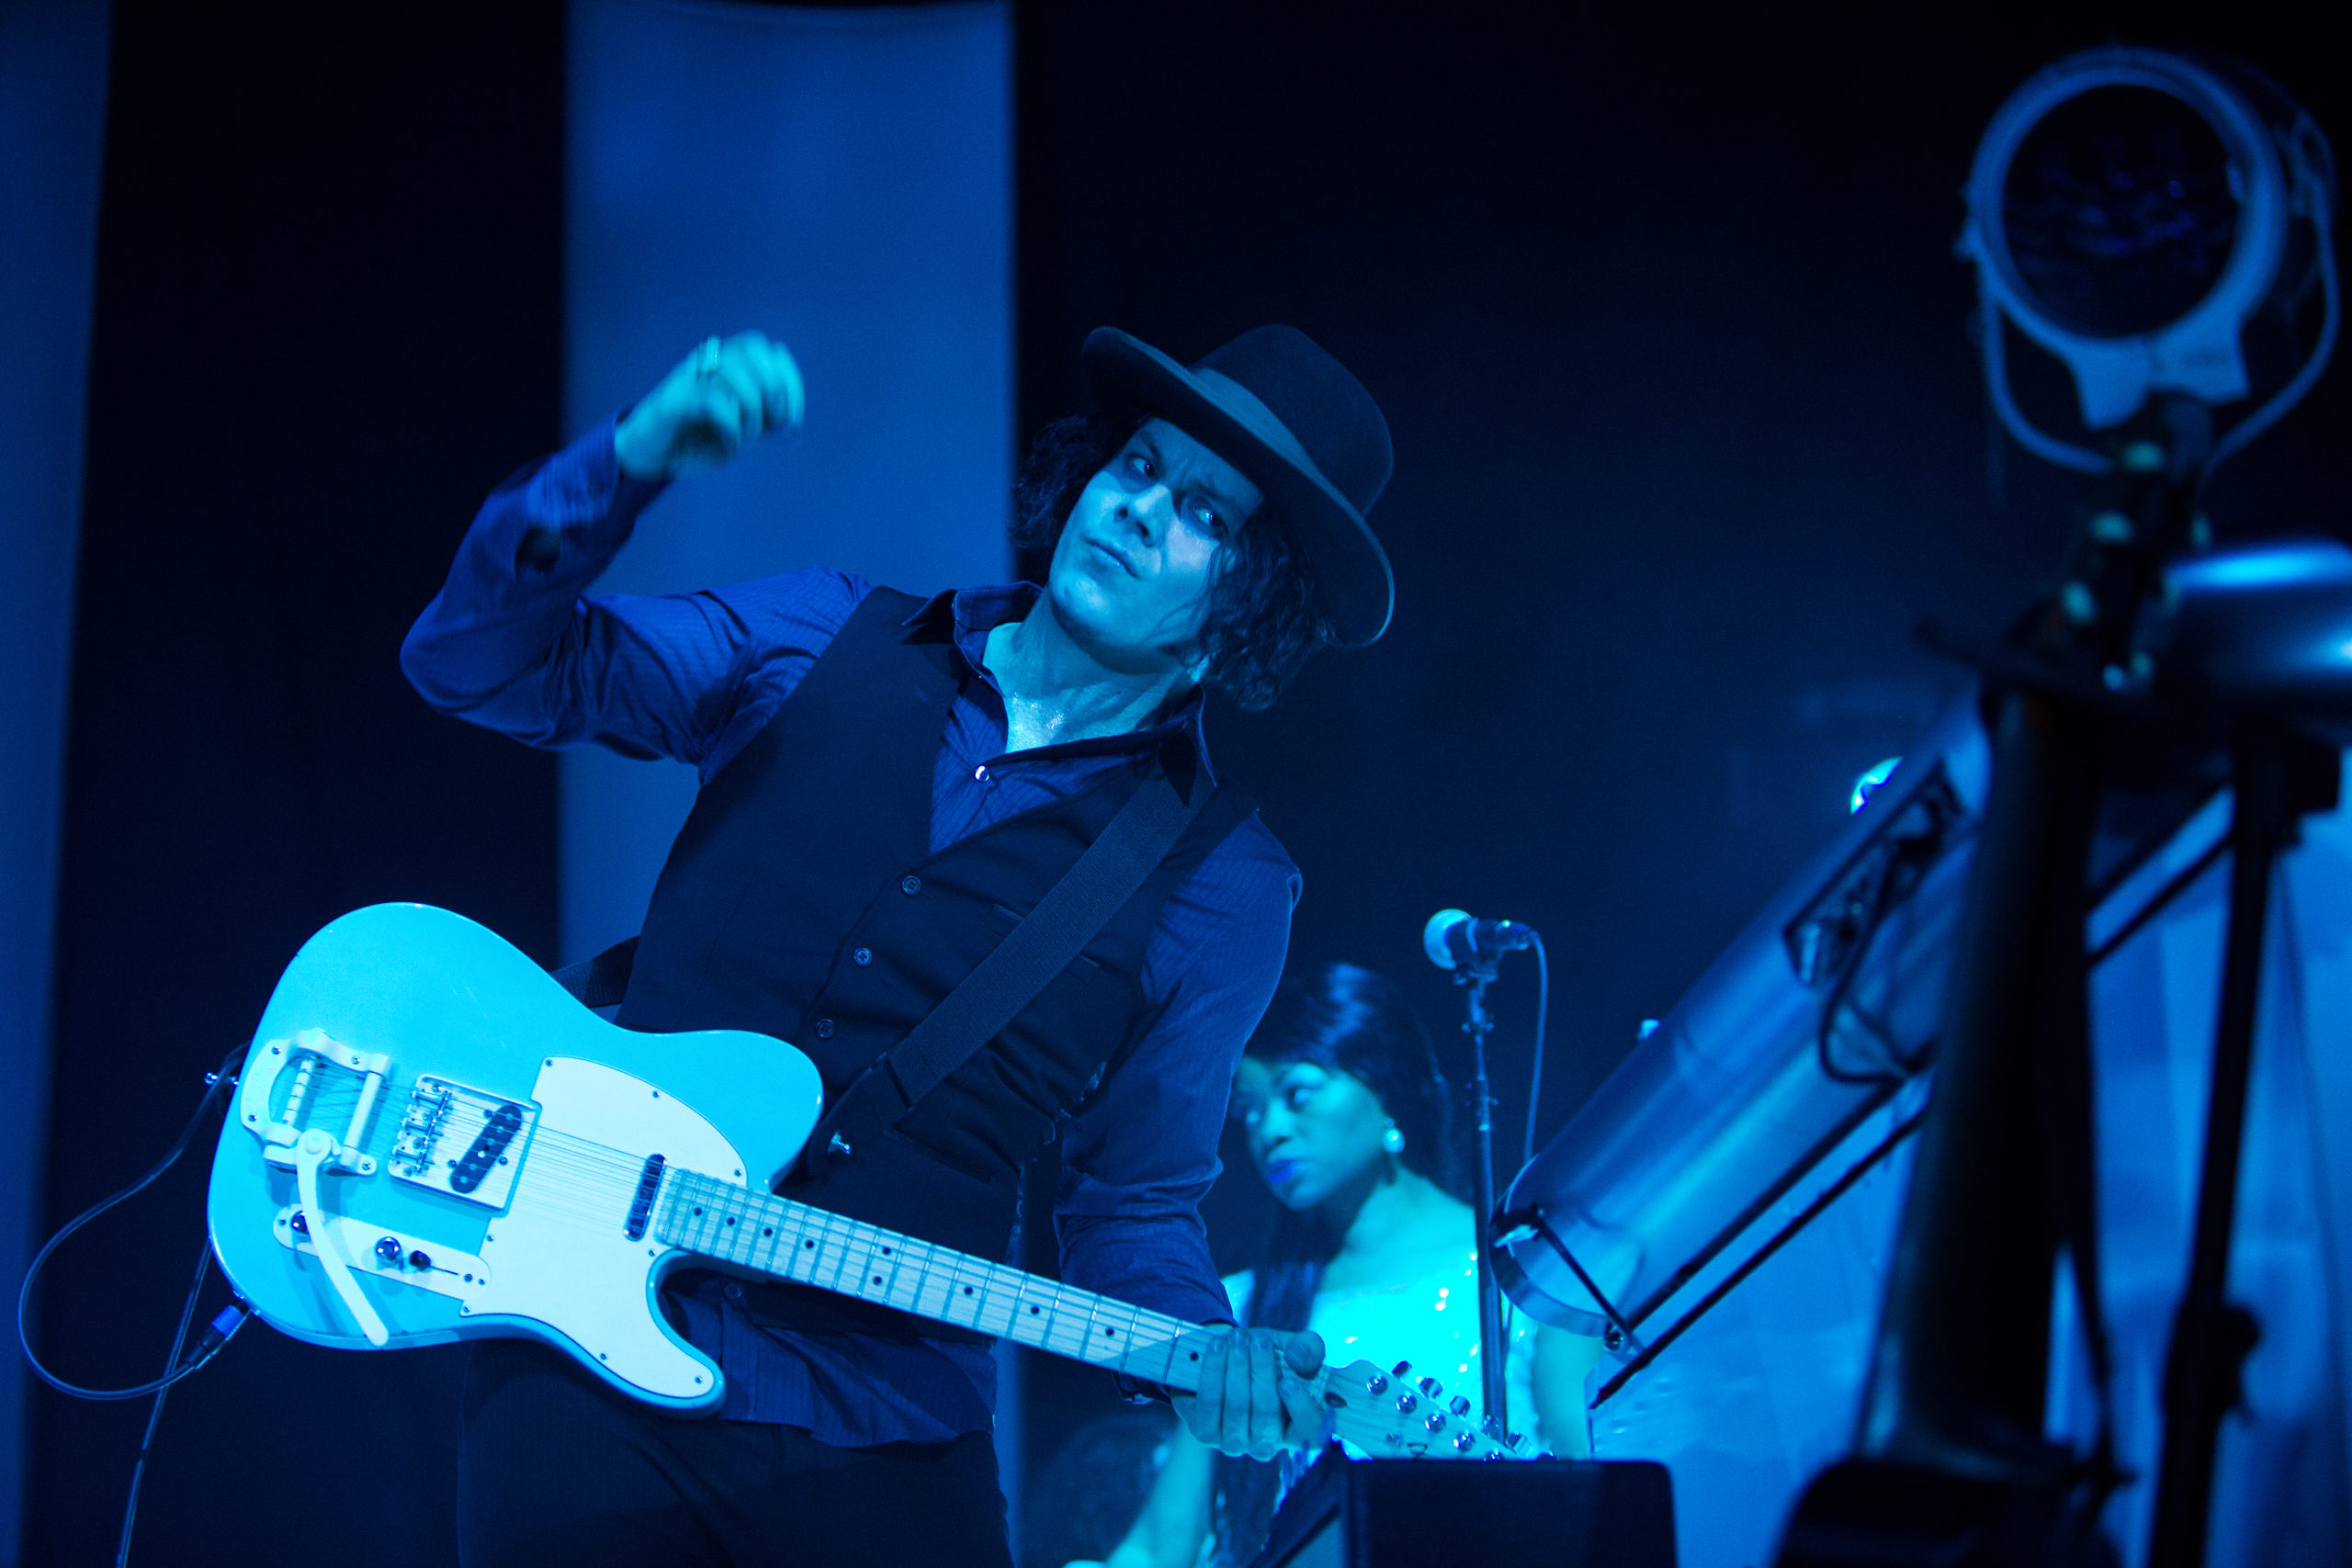 Jack White Replaces Morgan Wallen as 'SNL' Musical Guest